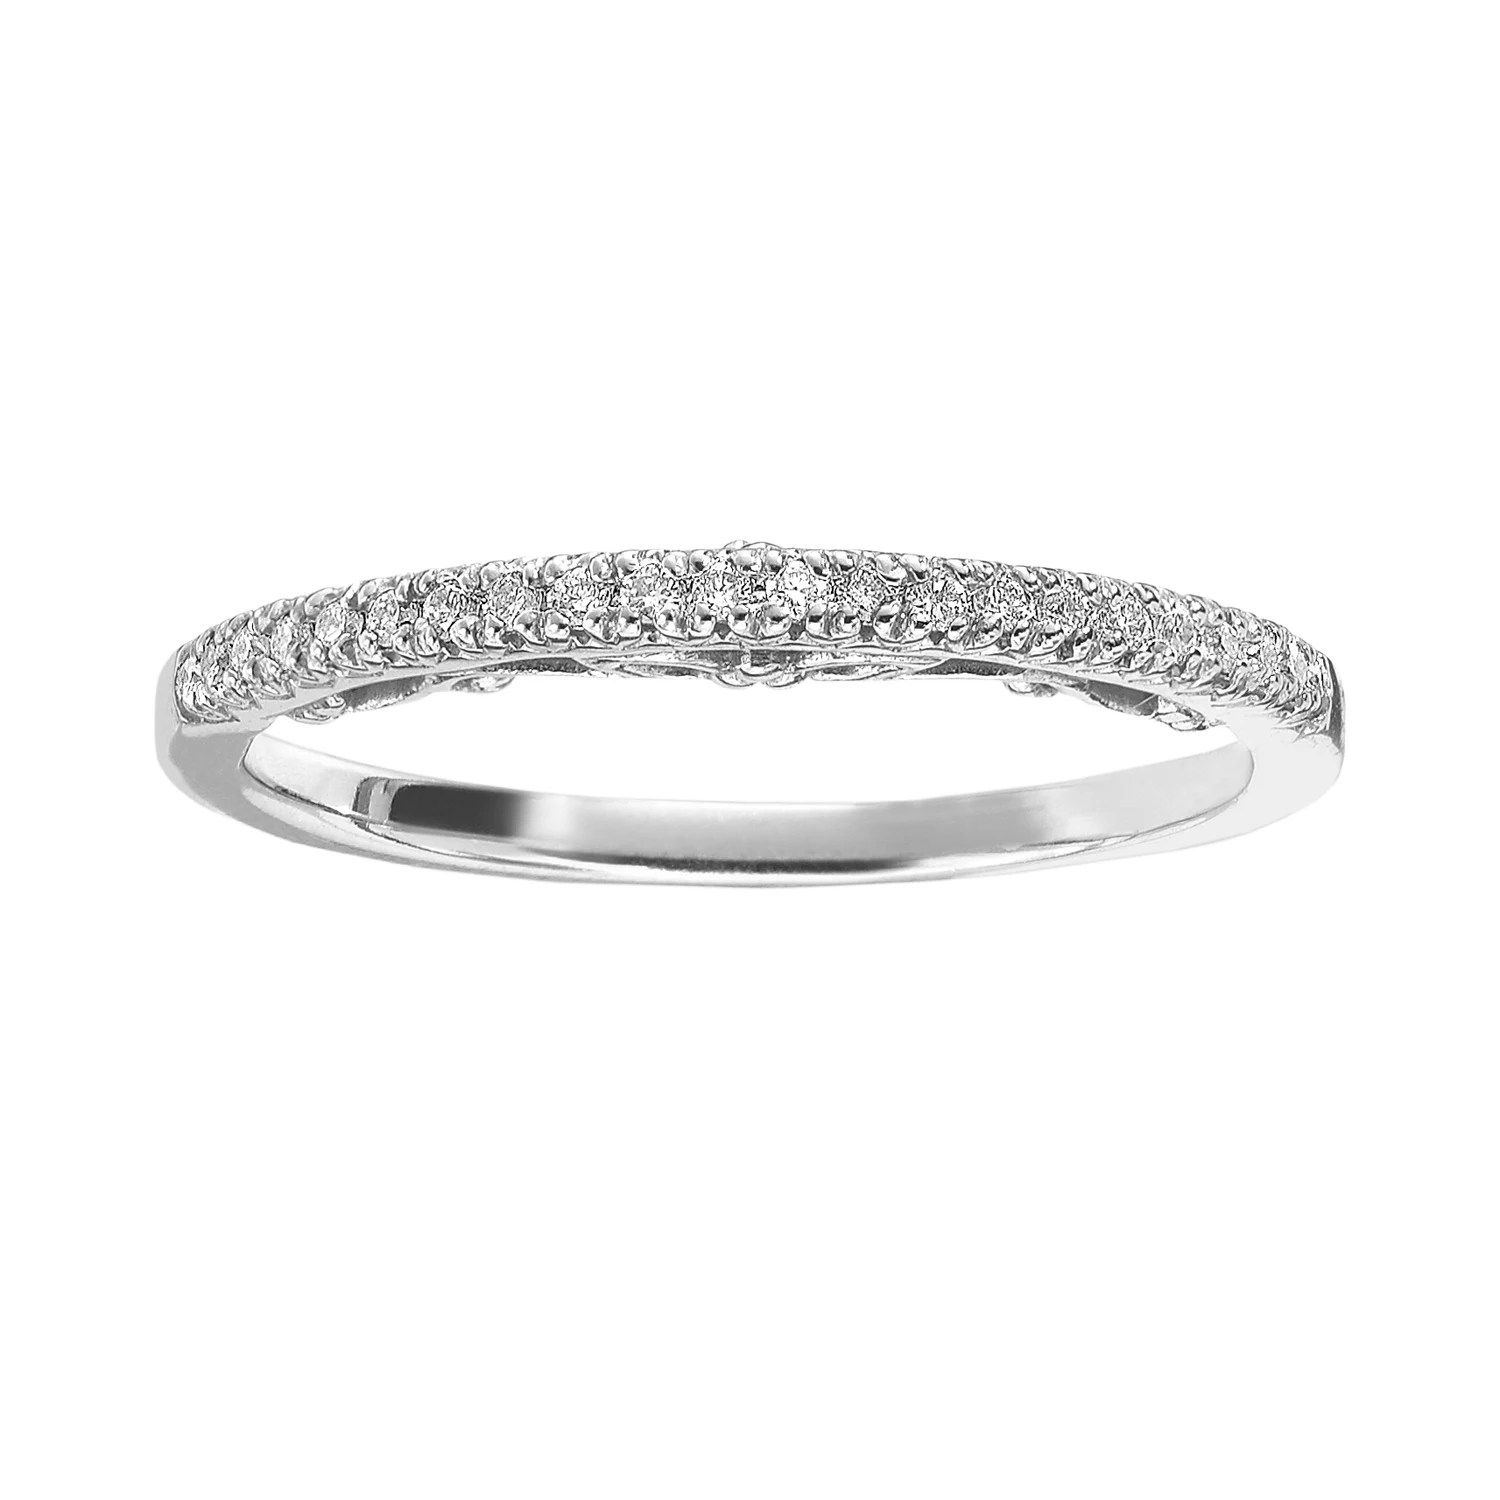 Simply Vera Vera Wang 14k White Gold 110 Ct TW Diamond